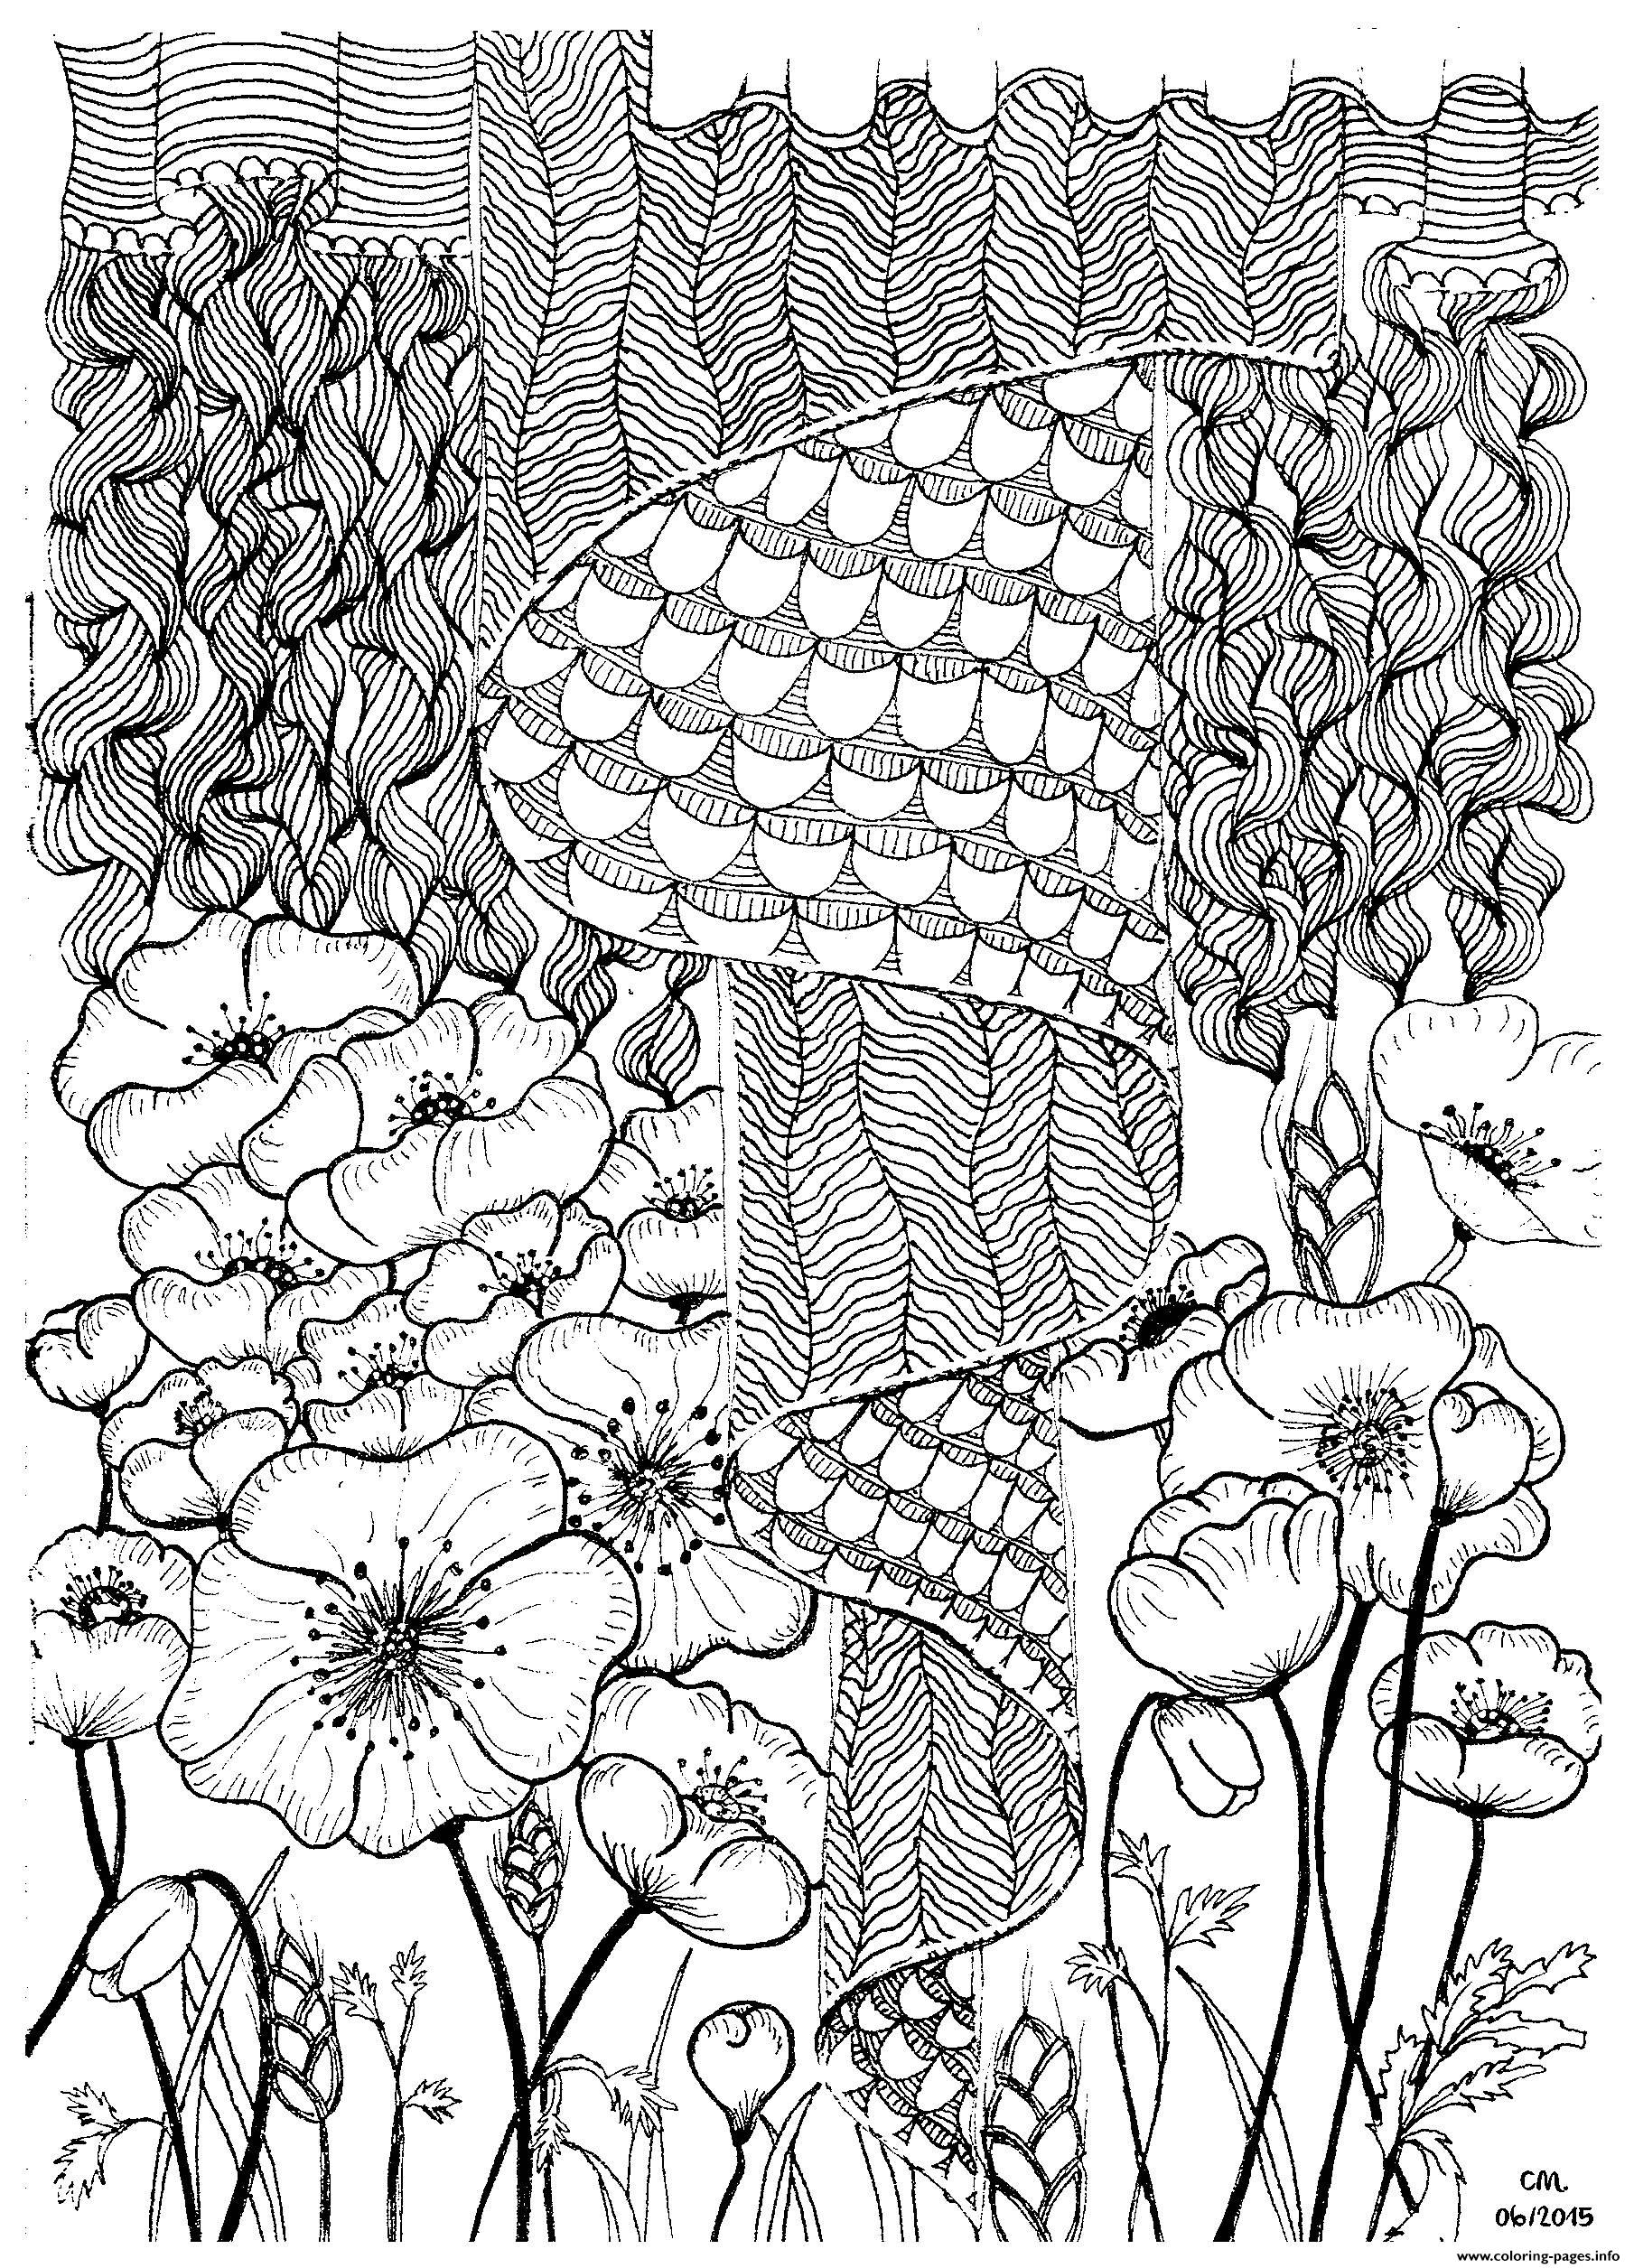 zentangle coloring pages free printable pin on zentangle coloring pages for adults pages zentangle coloring free printable